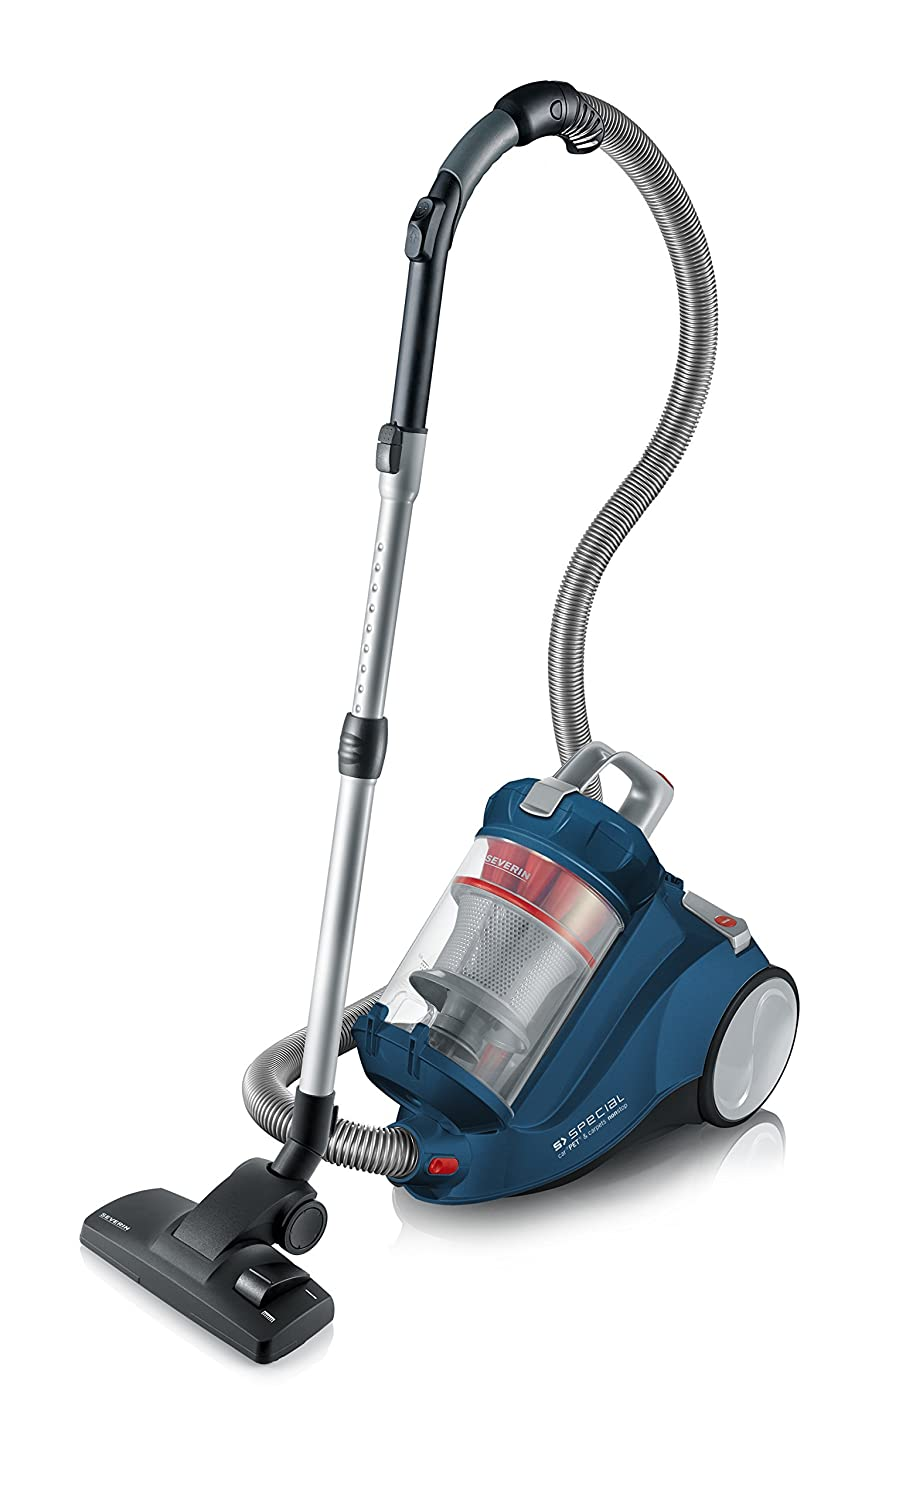 10 Best Bagless Canister Vacuum Cleaners For Pet Hair 2018